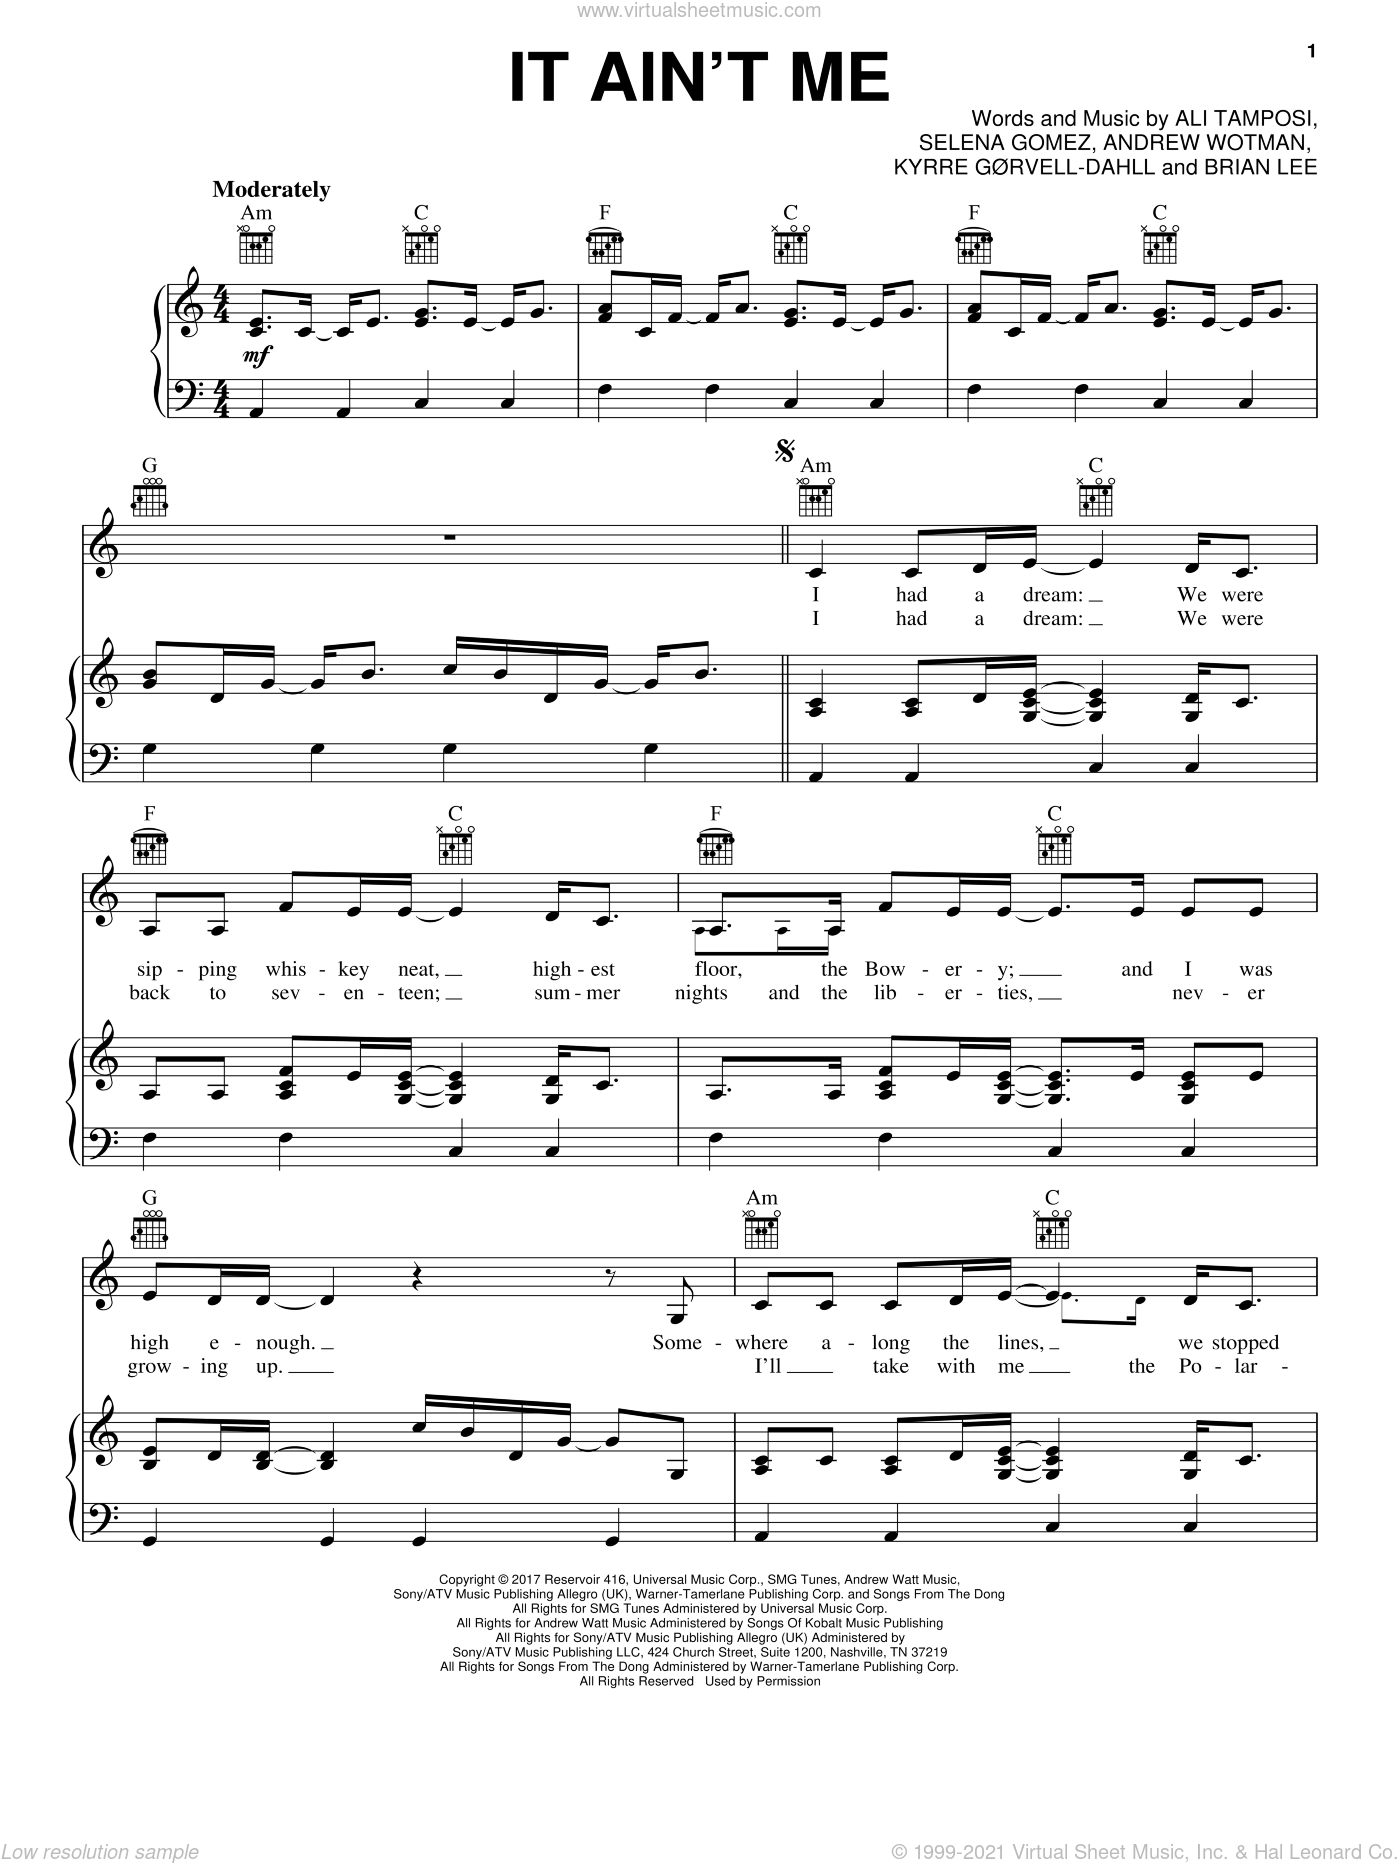 It Ain't Me sheet music for voice, piano or guitar by Selena Gomez, Ali Tamposi and Brian Lee. Score Image Preview.